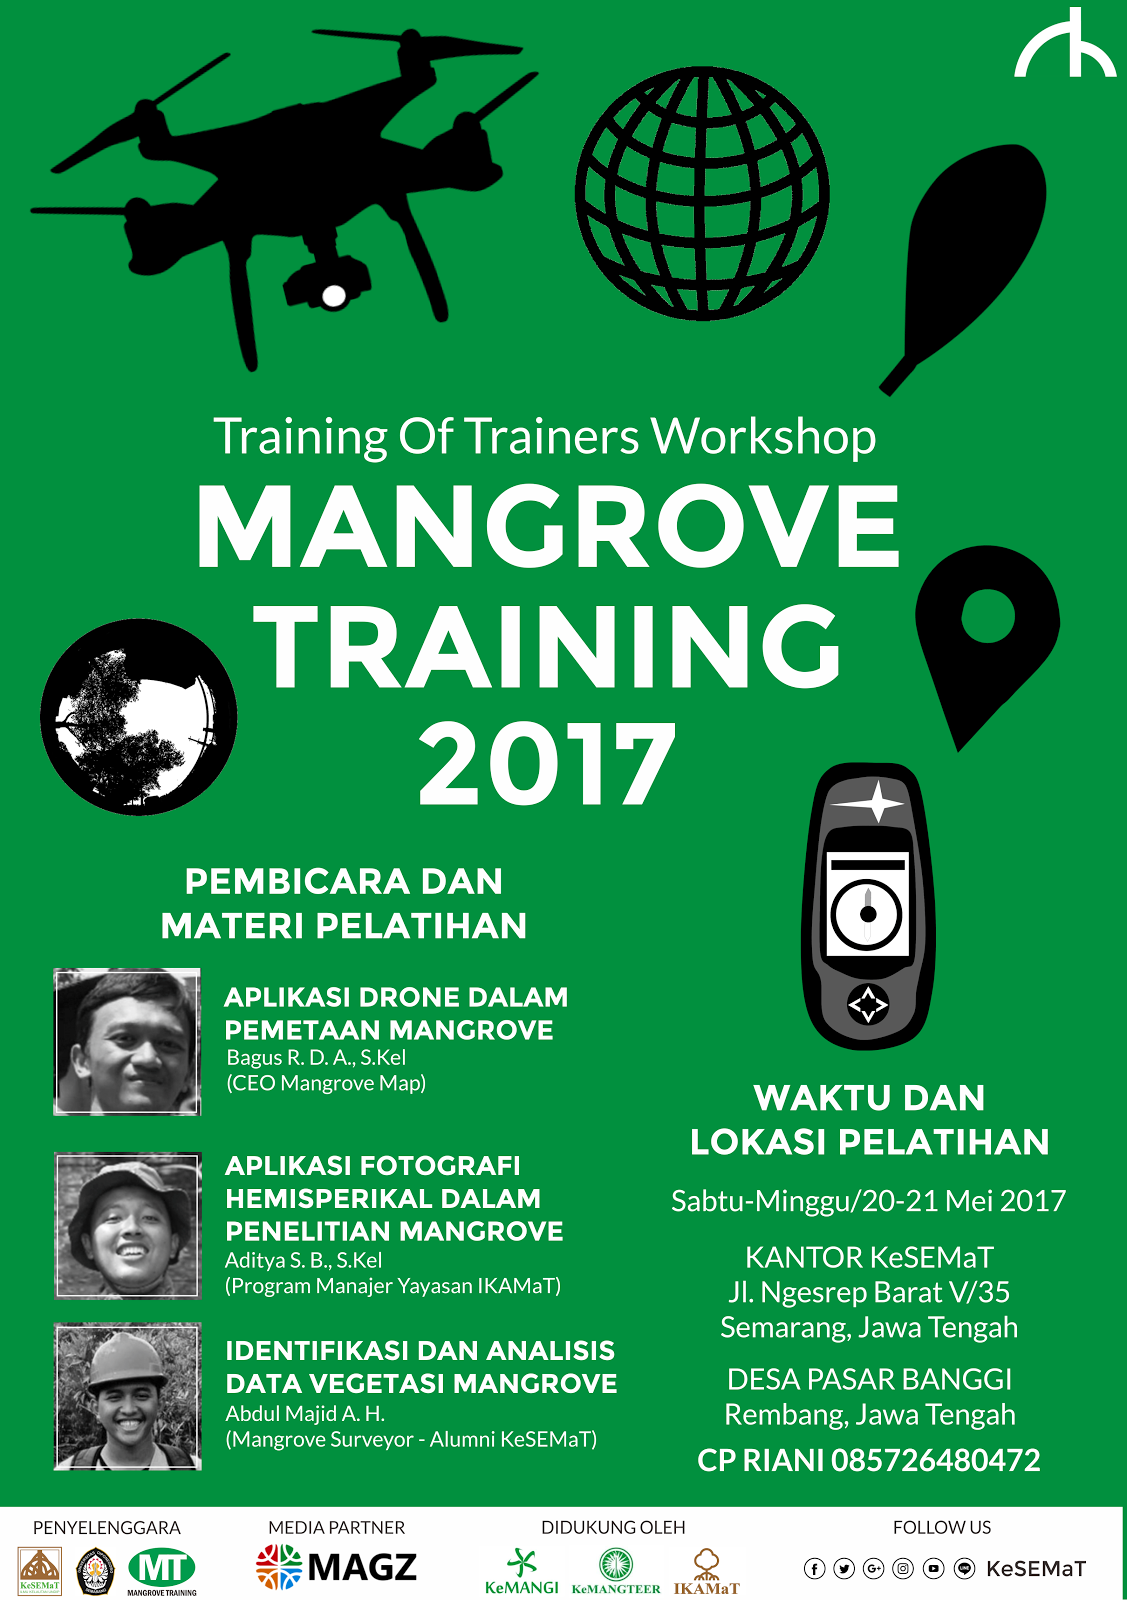 MANGROVE TRAINING 2017